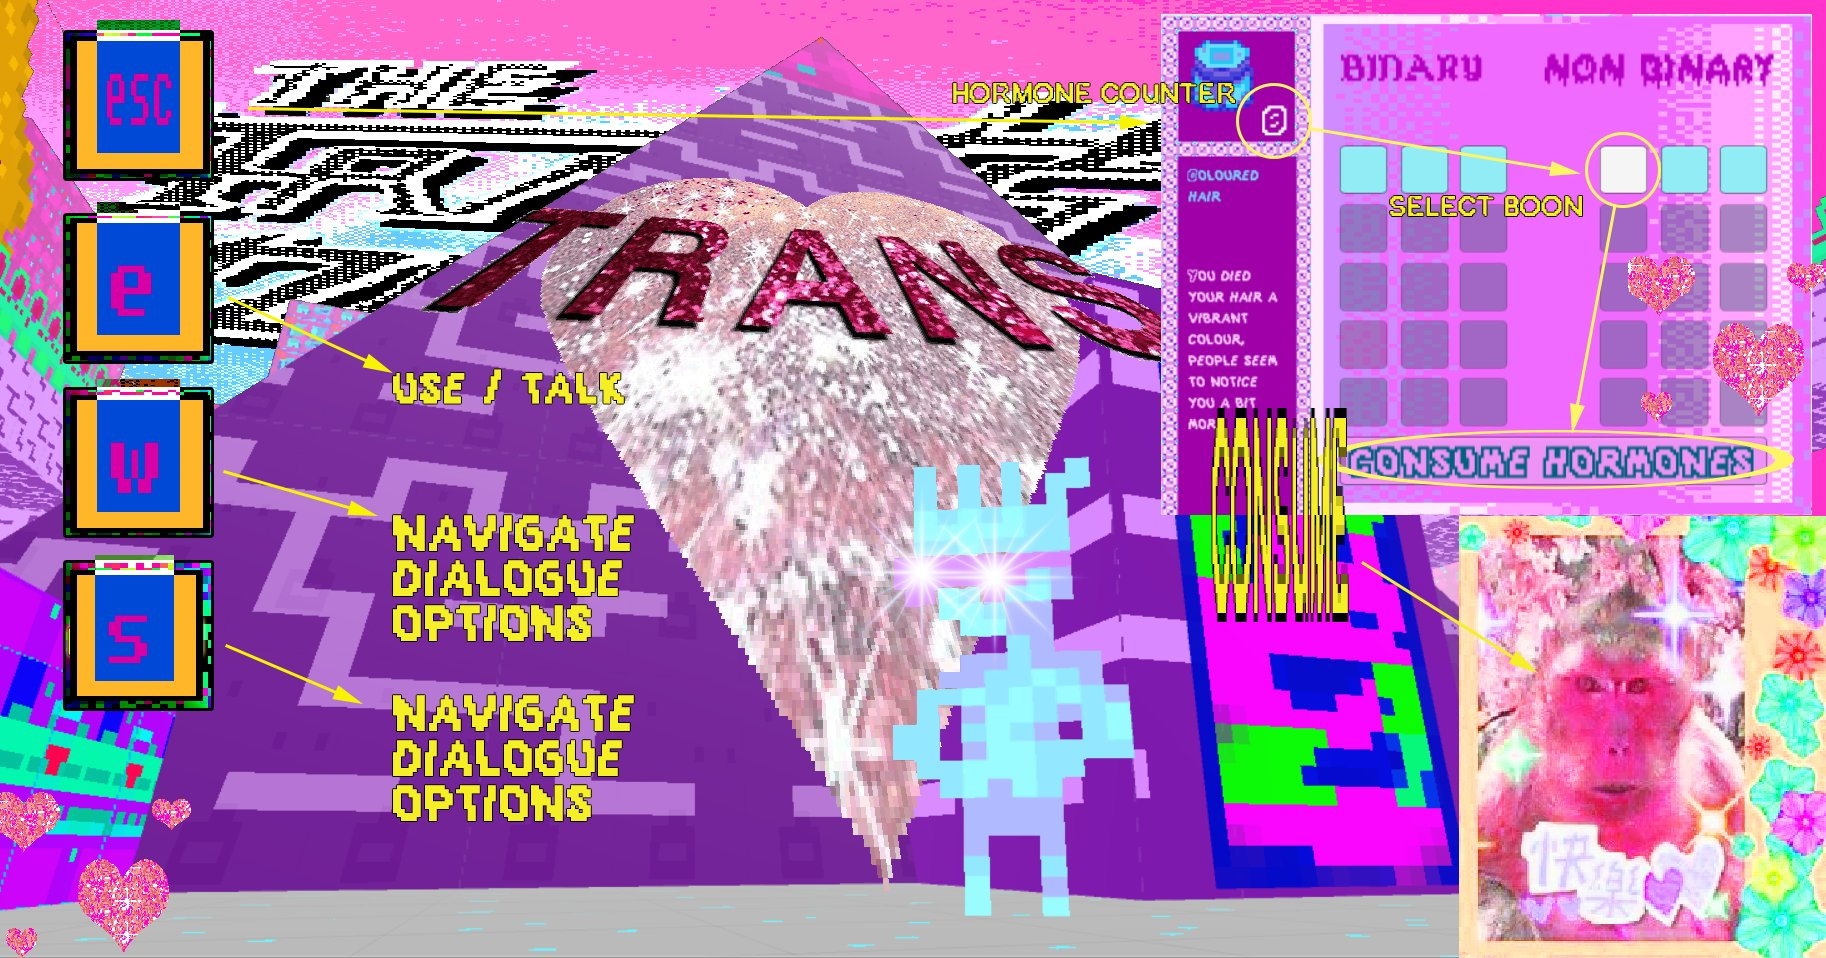 Crowded screen with faded pixelated person and a large heart with the word 'trans' above it. Boxes saying 'esc' and 'e' and 'w' and 's' with menu items next to them. A monkey face with sticker decorations around it in a frame. A grid with 'binary' and 'non binary' with small squares with arrows pointing to 'consume hormones'.